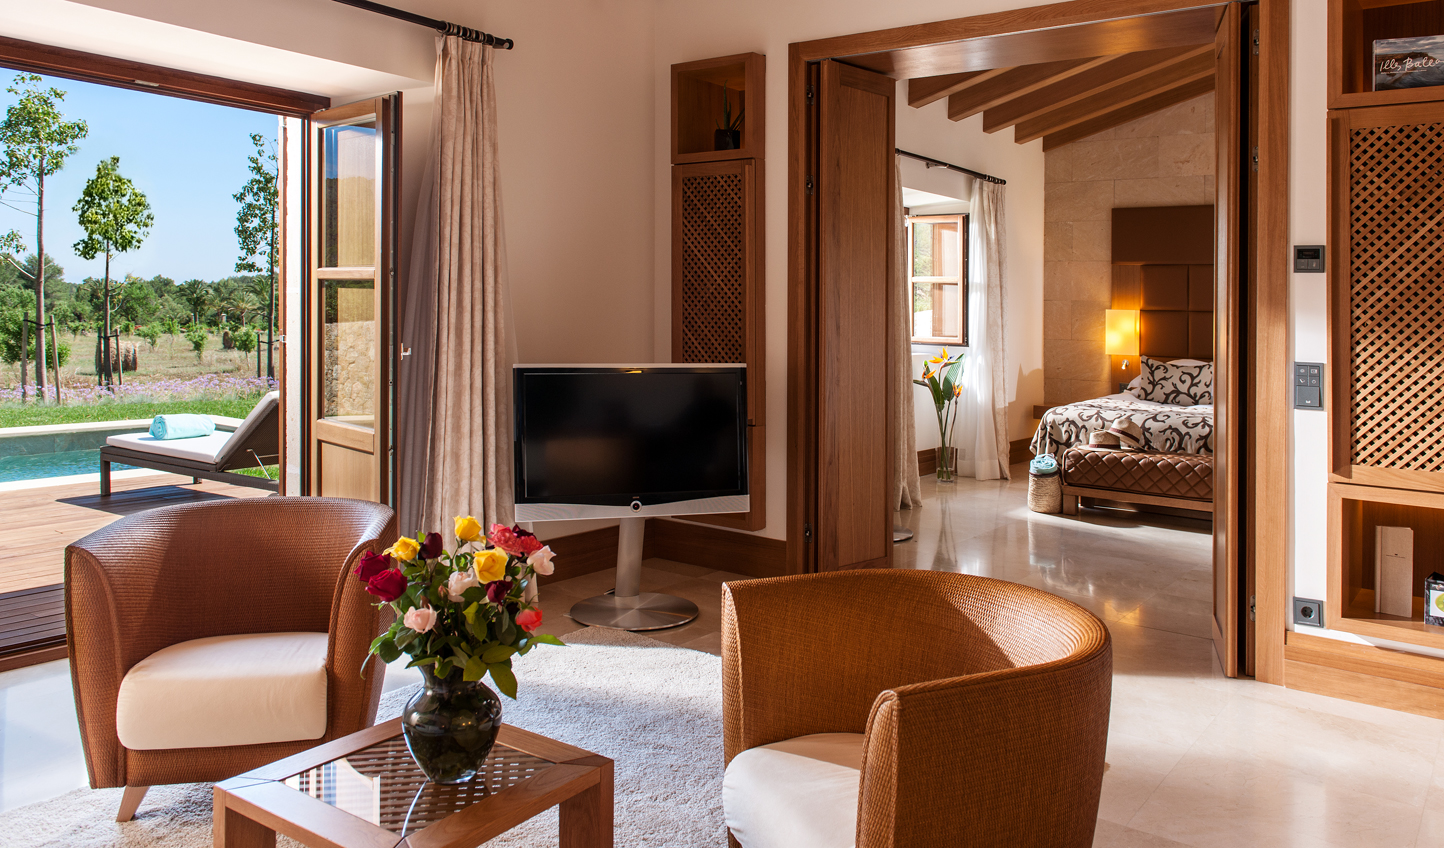 Relax in style at Castell Son Claret